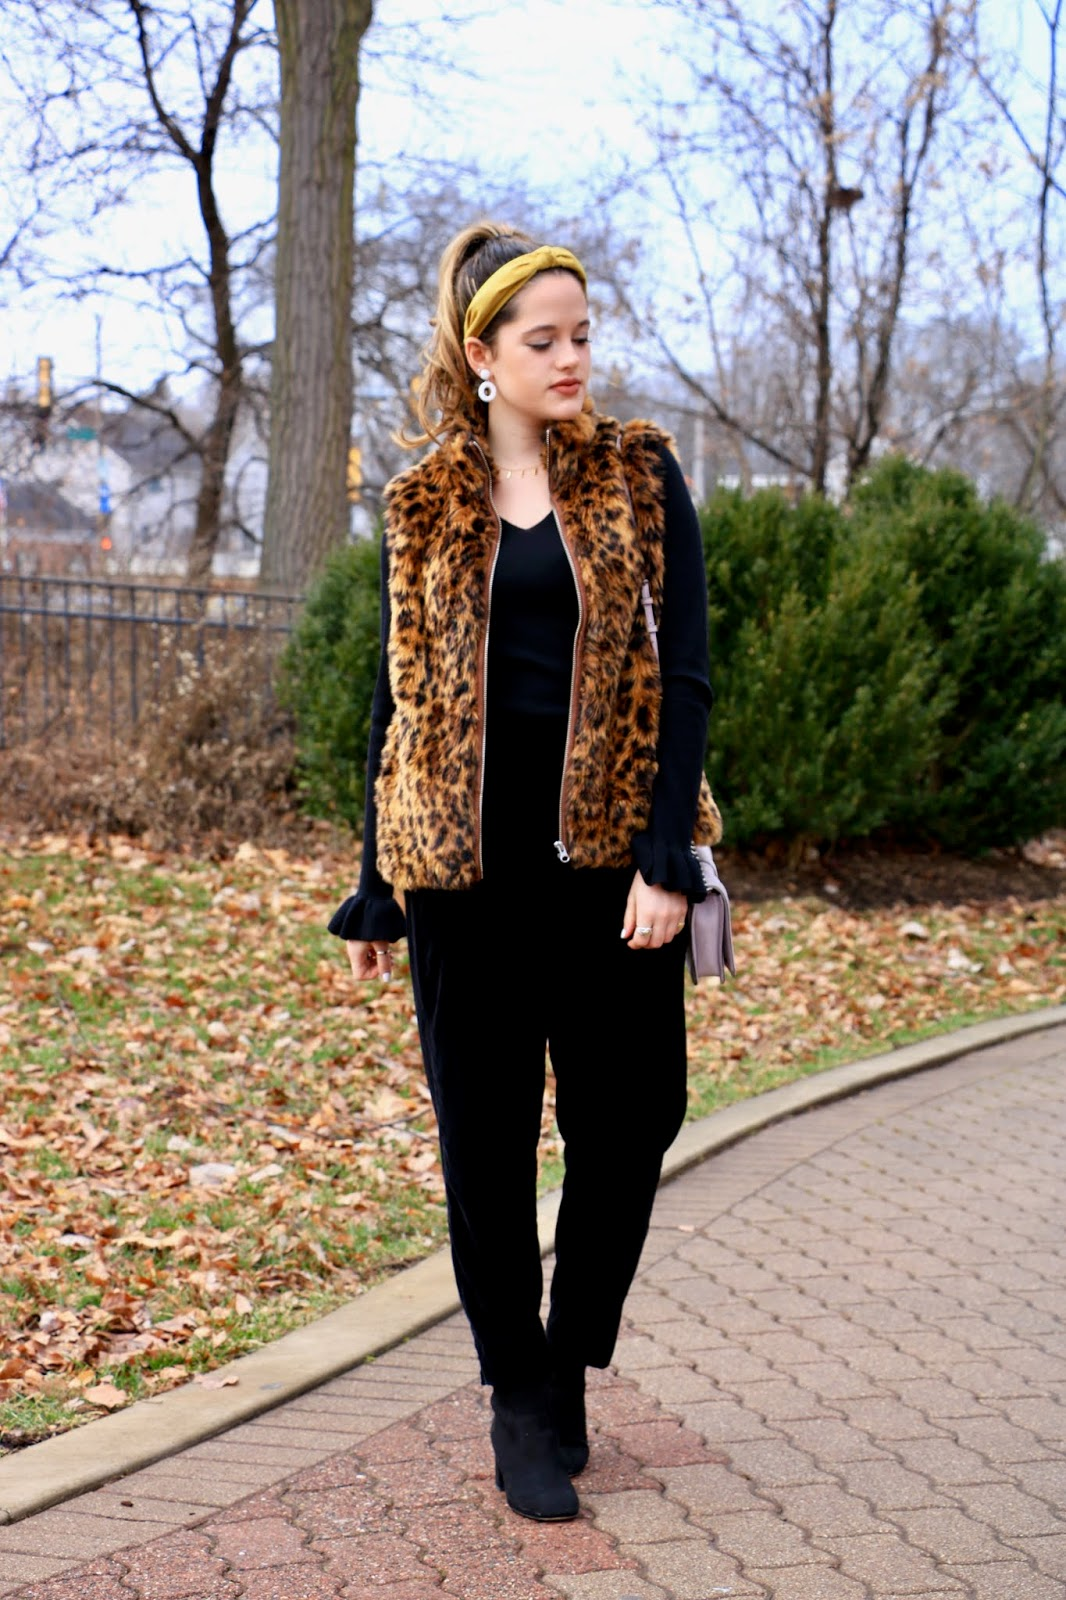 Nyc fashion blogger Kathleen Harper showing how to wear leopard